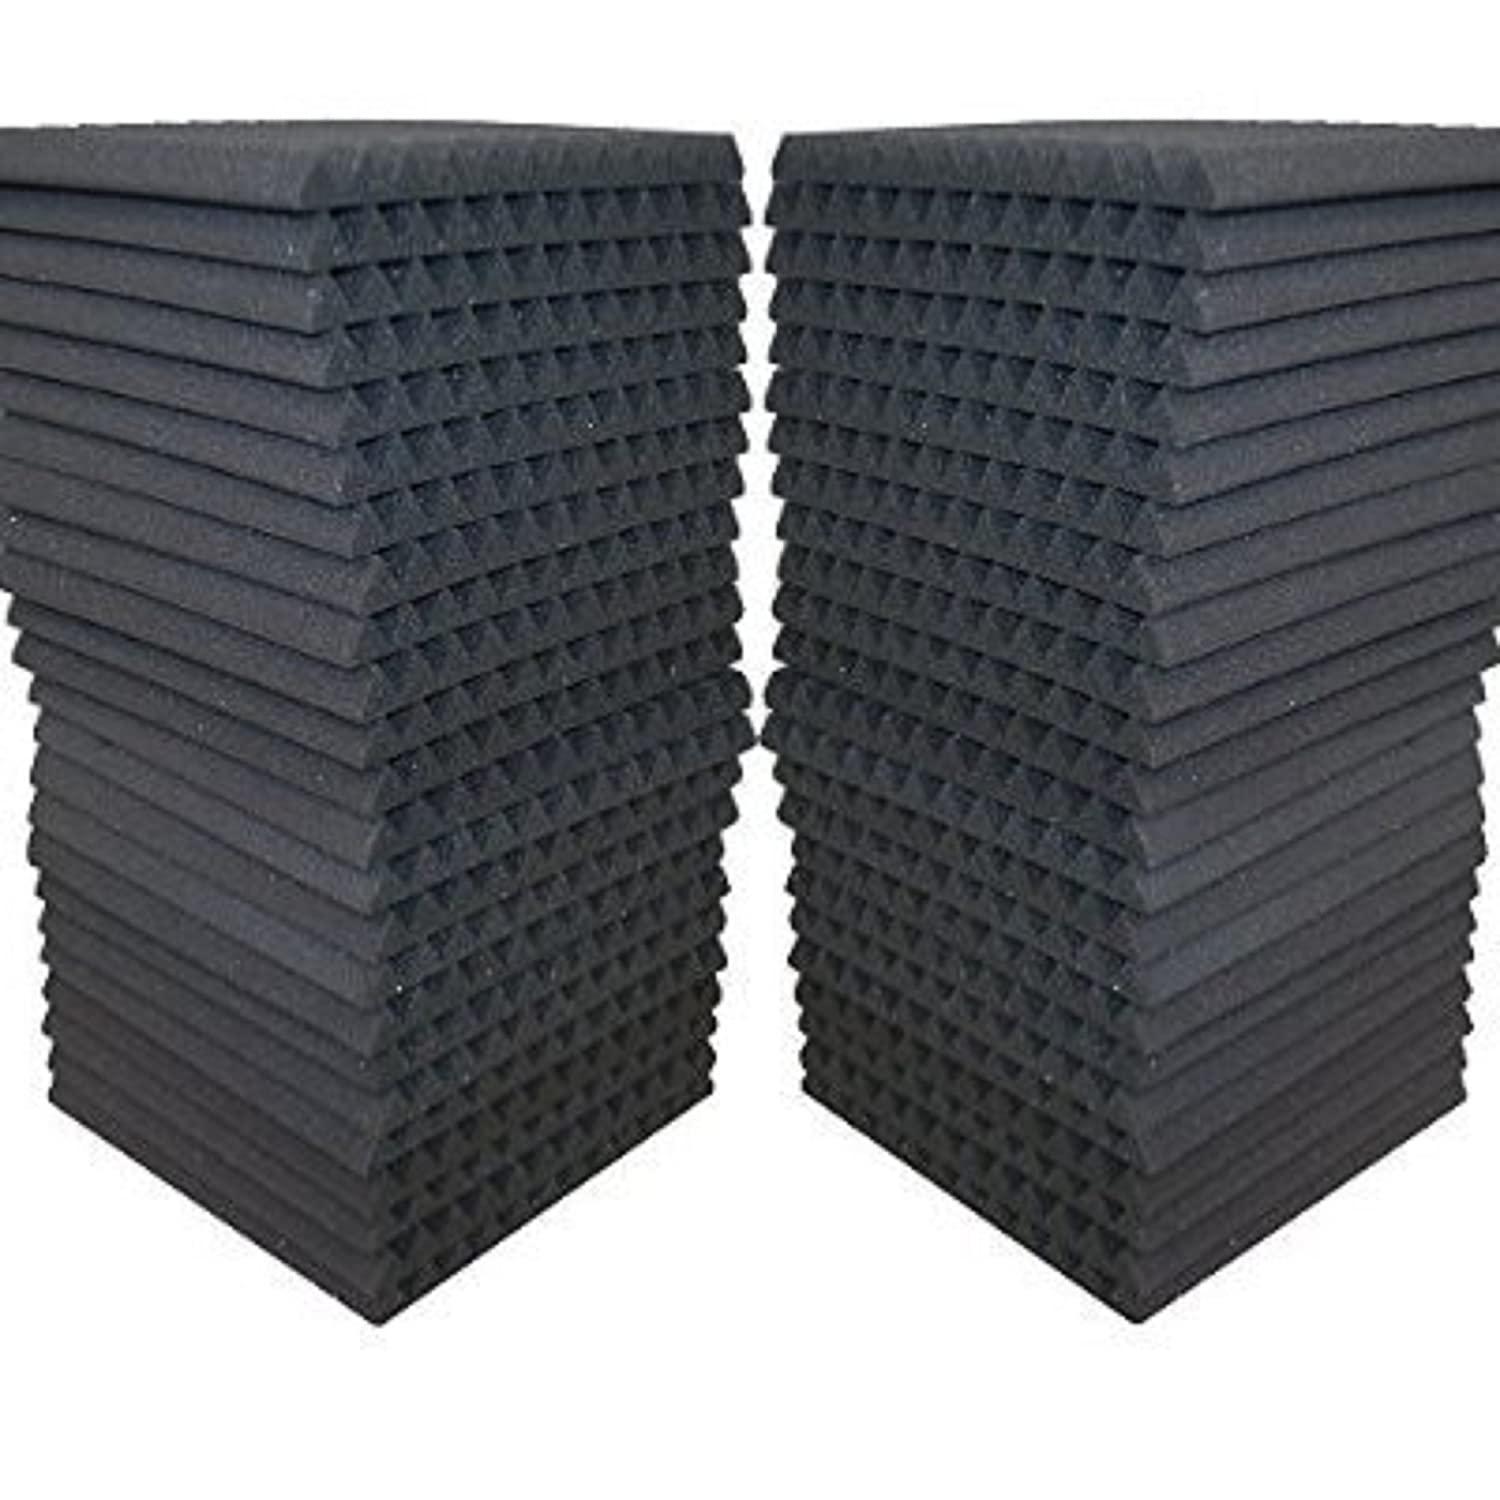 Acoustic Foam to cover small surface